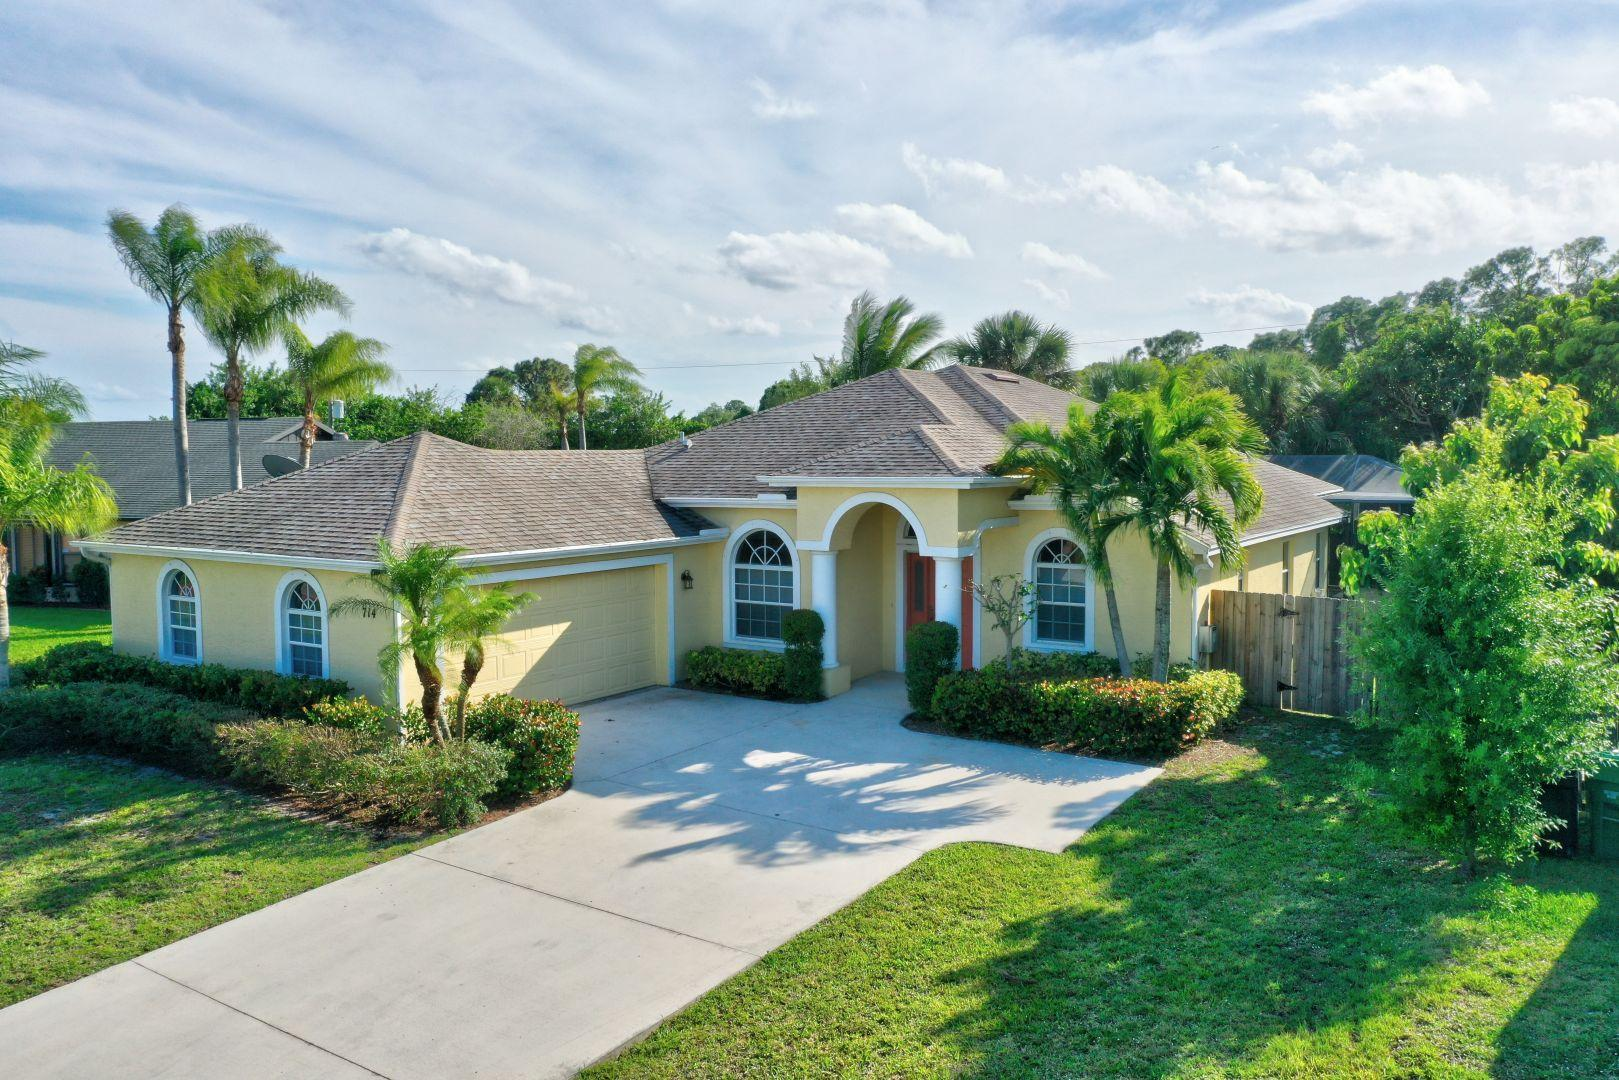 714 NE Galilean Street, Port Saint Lucie, Florida